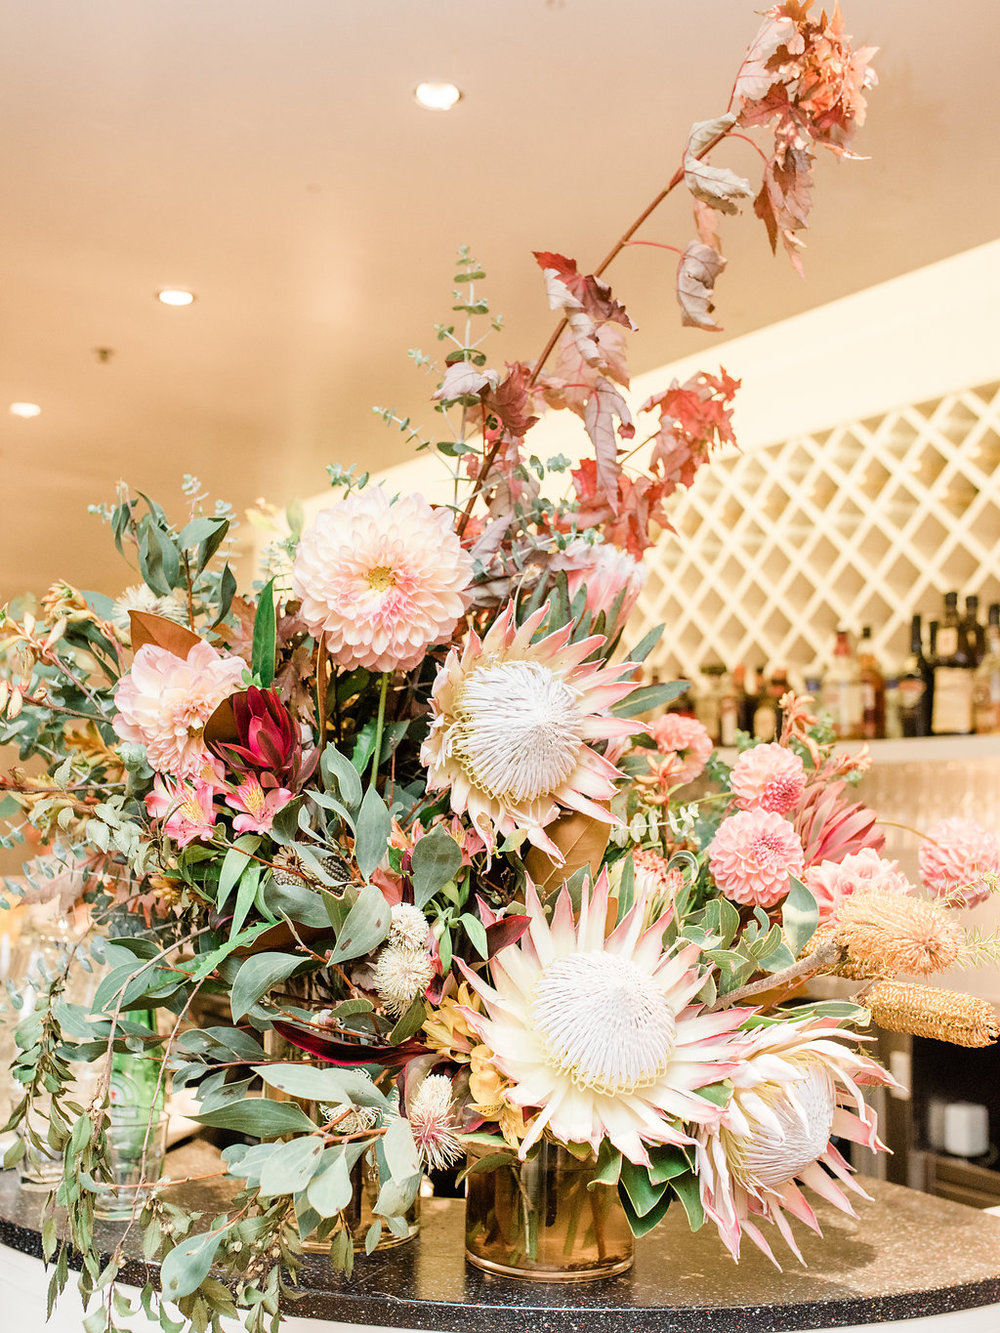 Welcome / bar area decor - Depending on whether the bar area is near your venue's entrance, this can be a two in one! Welcome your guests with a statement display of blooms to up the fancy.